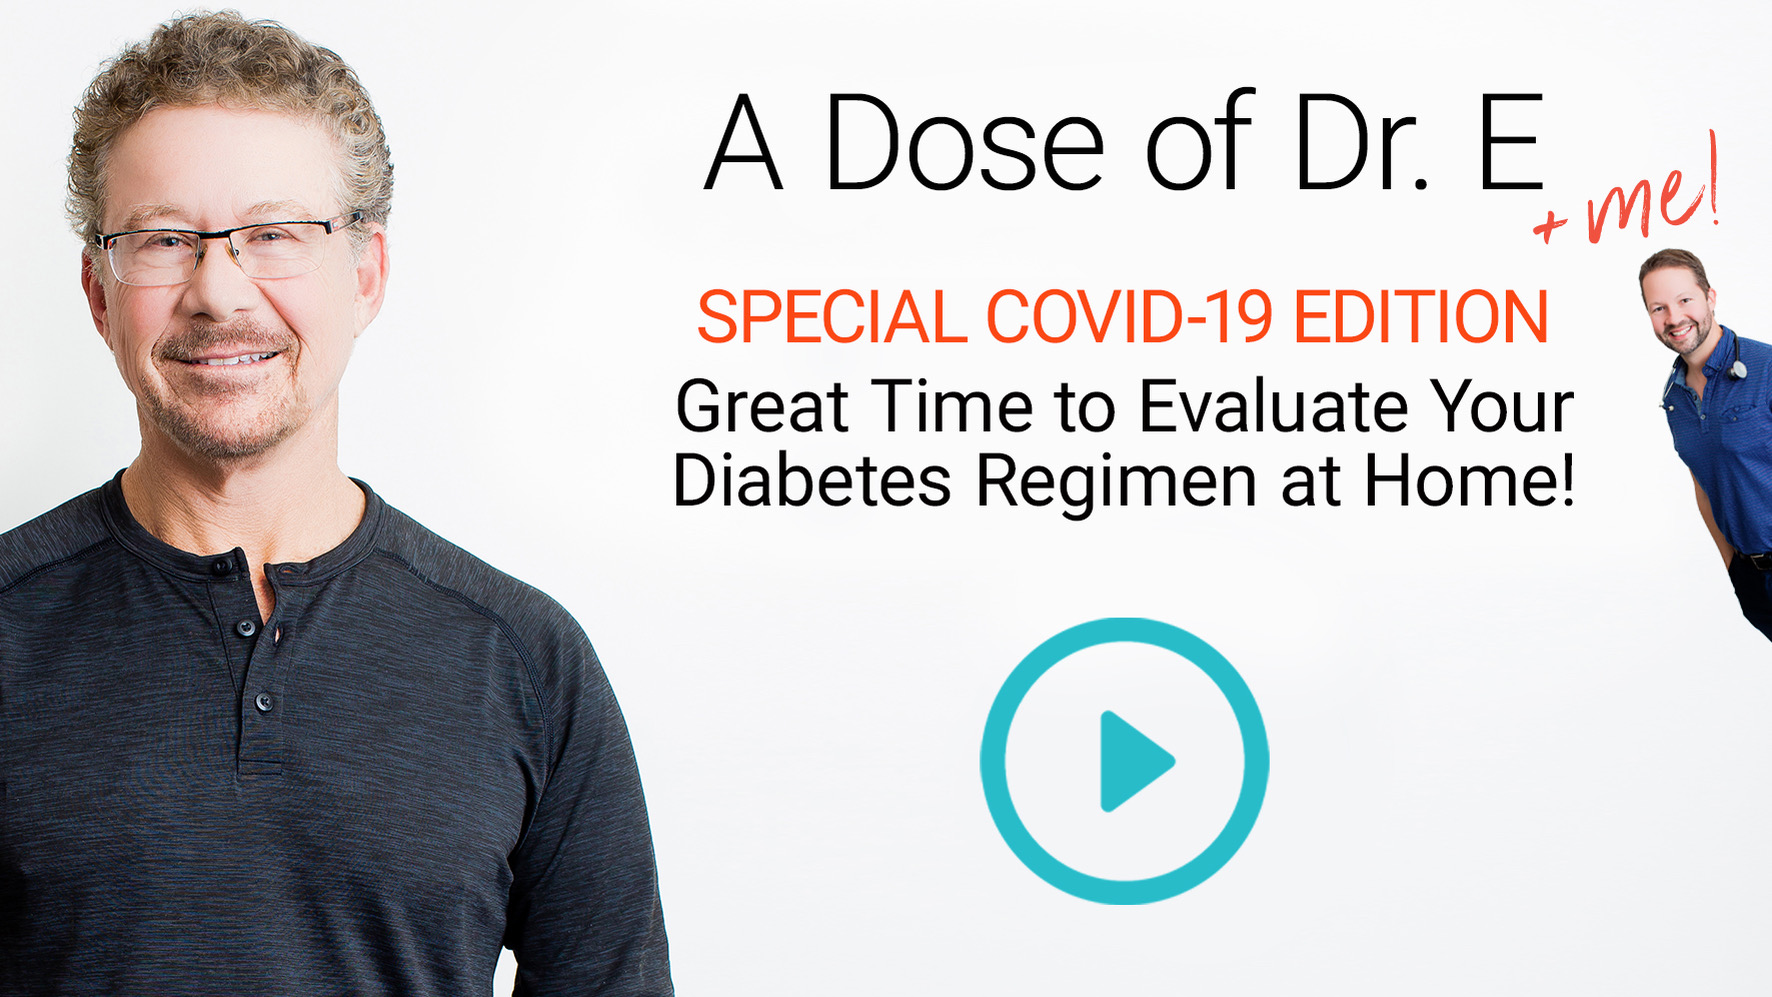 COVID-19 & Diabetes: A Great Time to Evaluate Your Diabetes Regimen at Home!